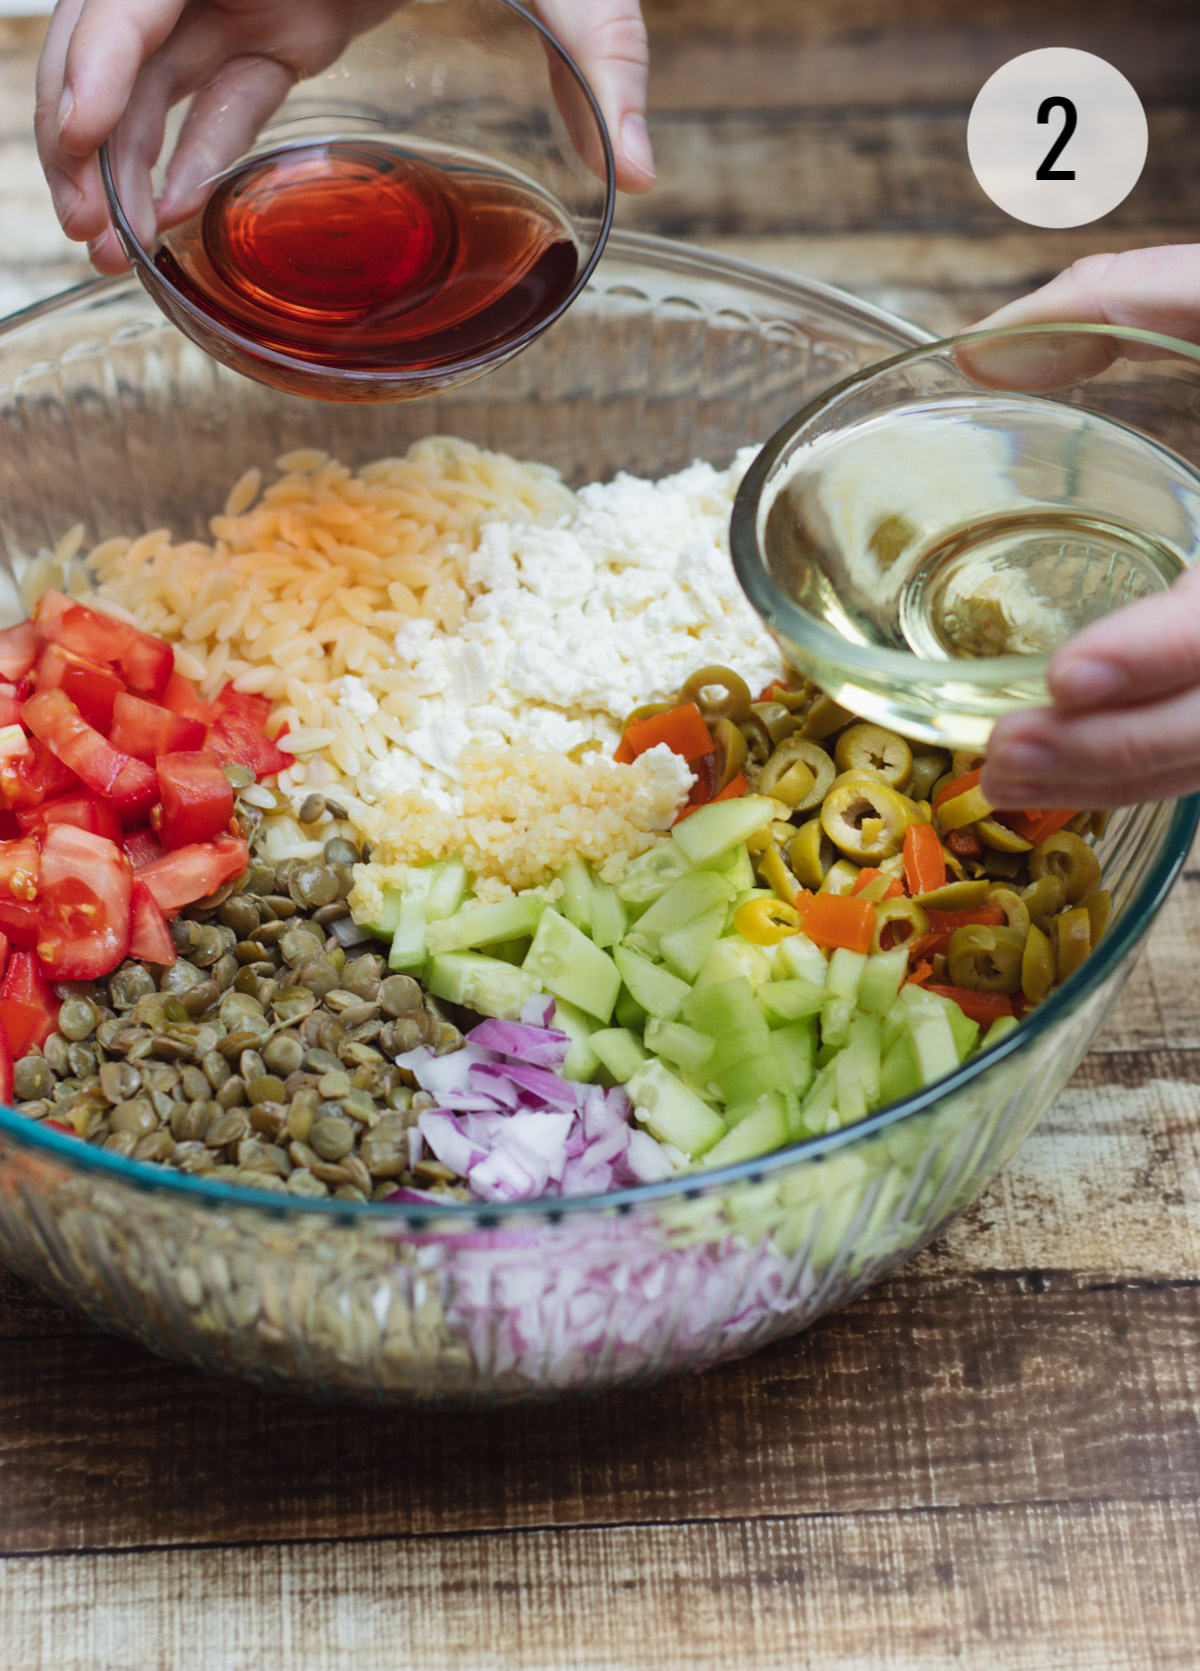 Ingredients for a Greek Orzo Salad with Lentils in a clear bowl with olive oil and red wine vinegar about to be poured in.